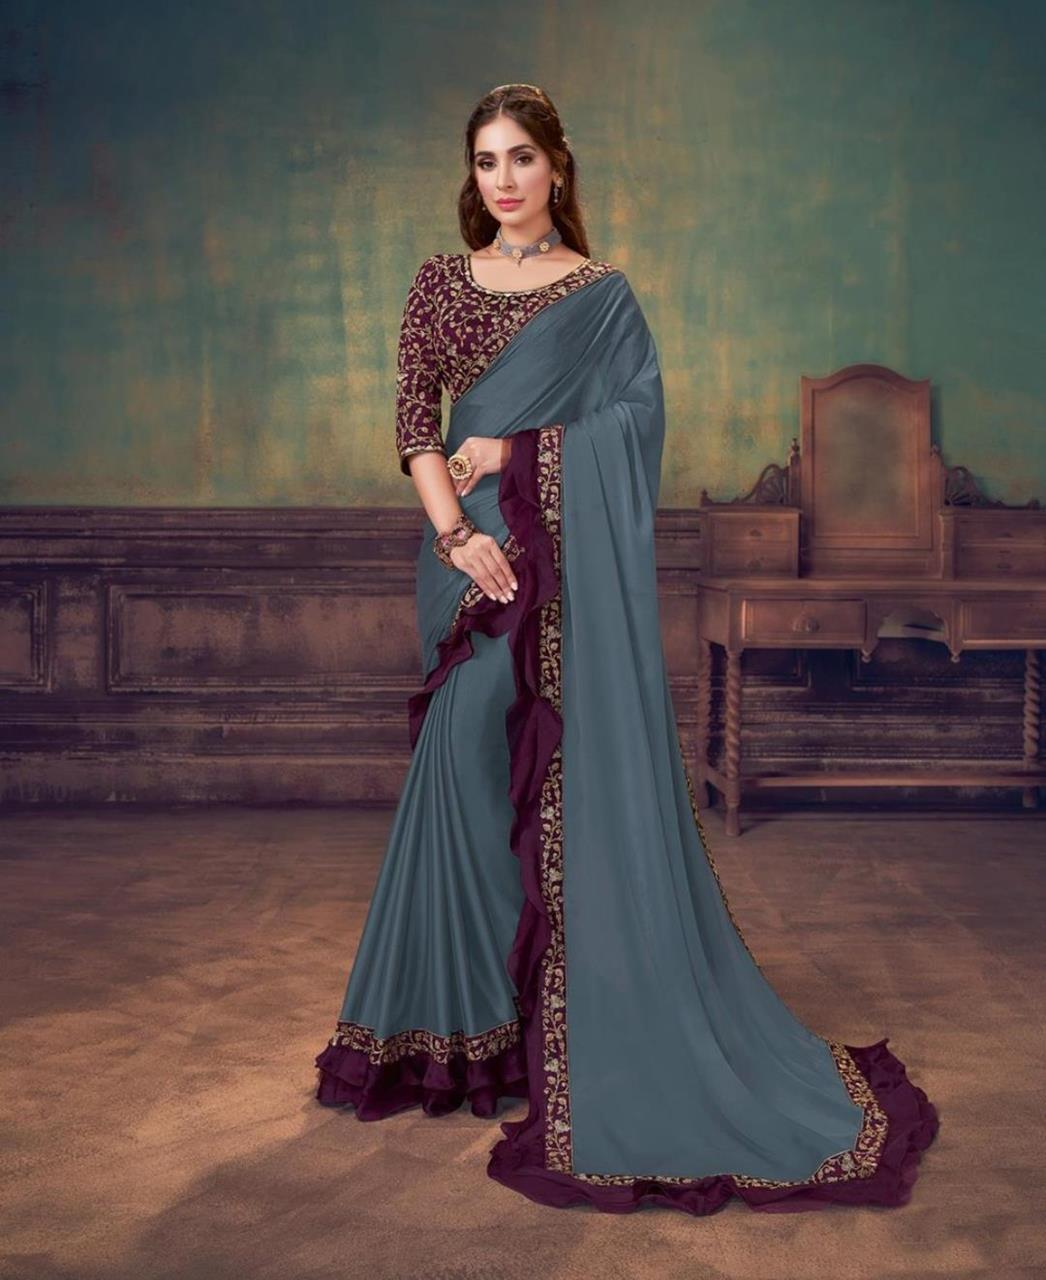 Sequins Silk Saree in Blue Grey